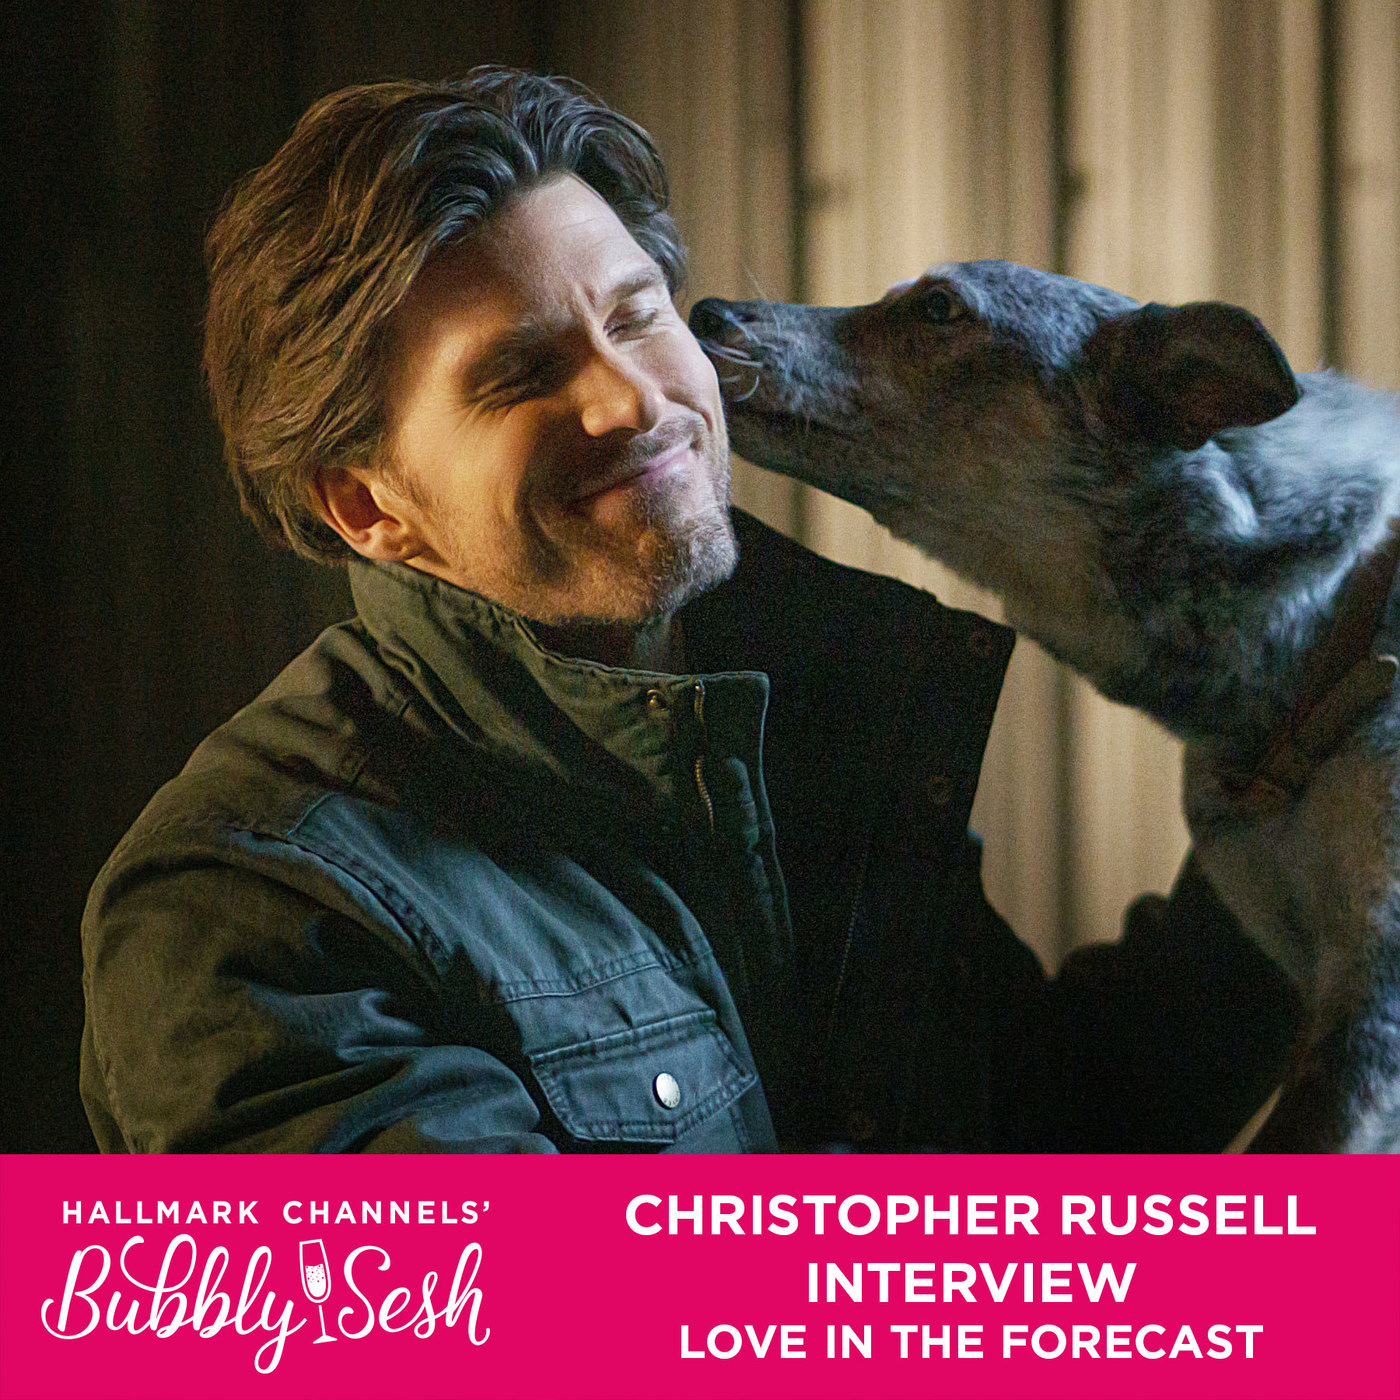 Christopher Russell Interview, Love in the Forecast